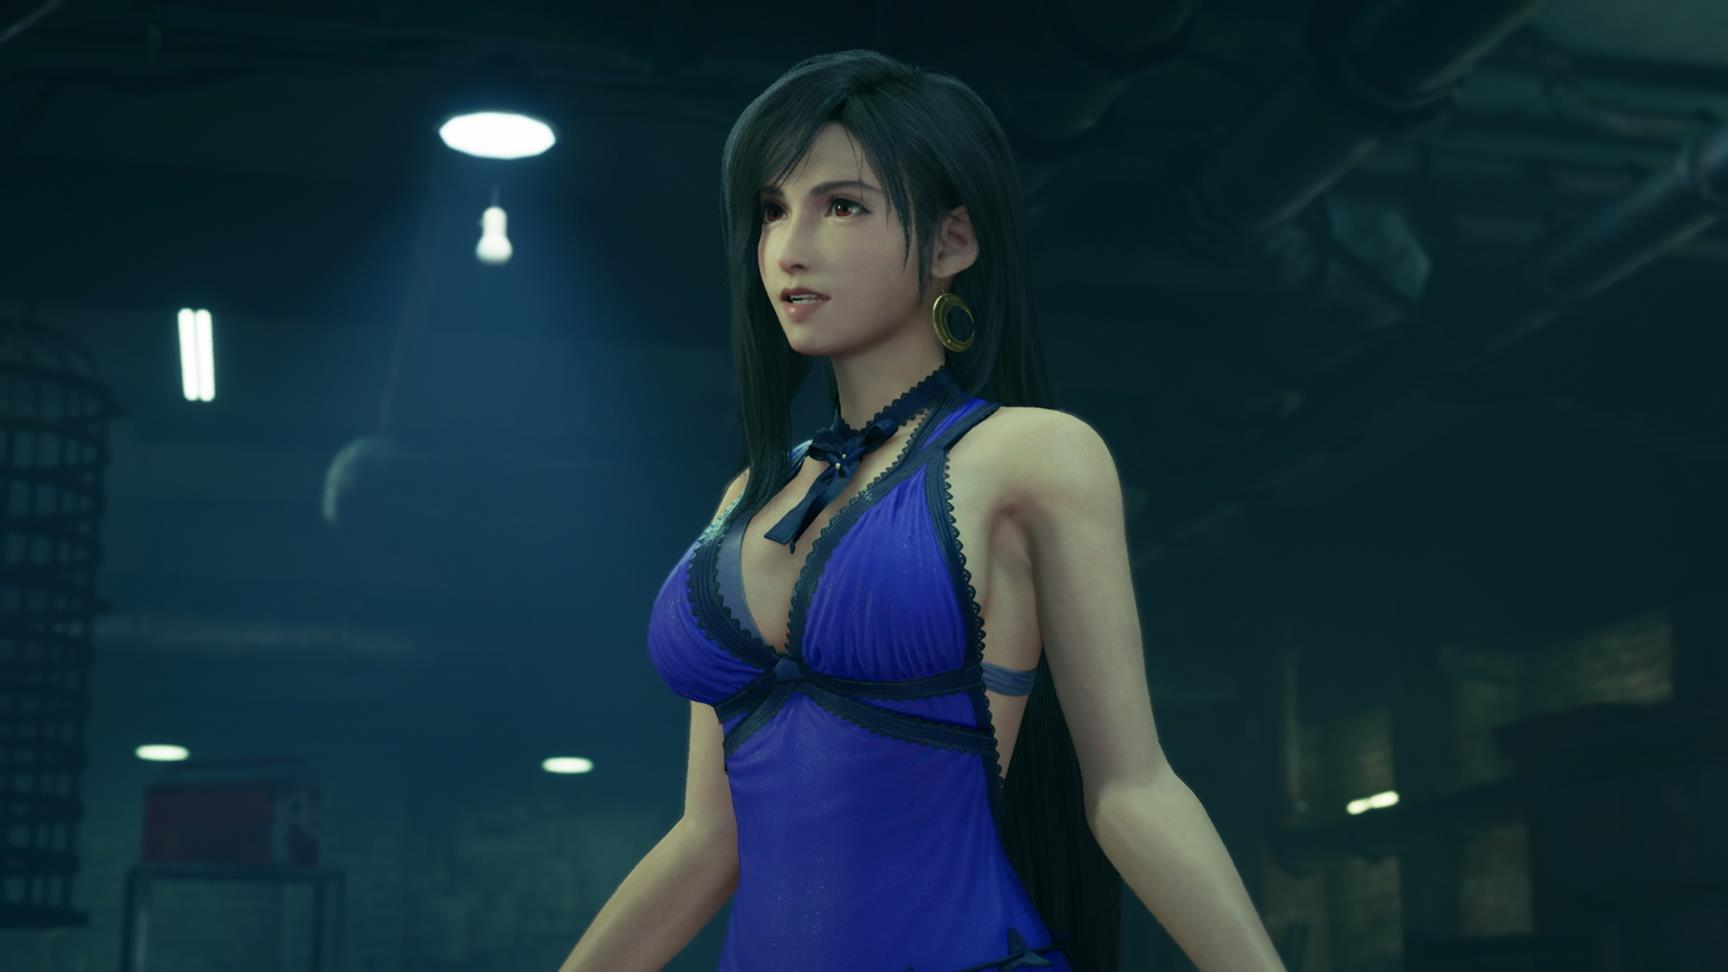 El trailer de Final Fantasy 7 Remake aparentemente confirma la versión para PC 24